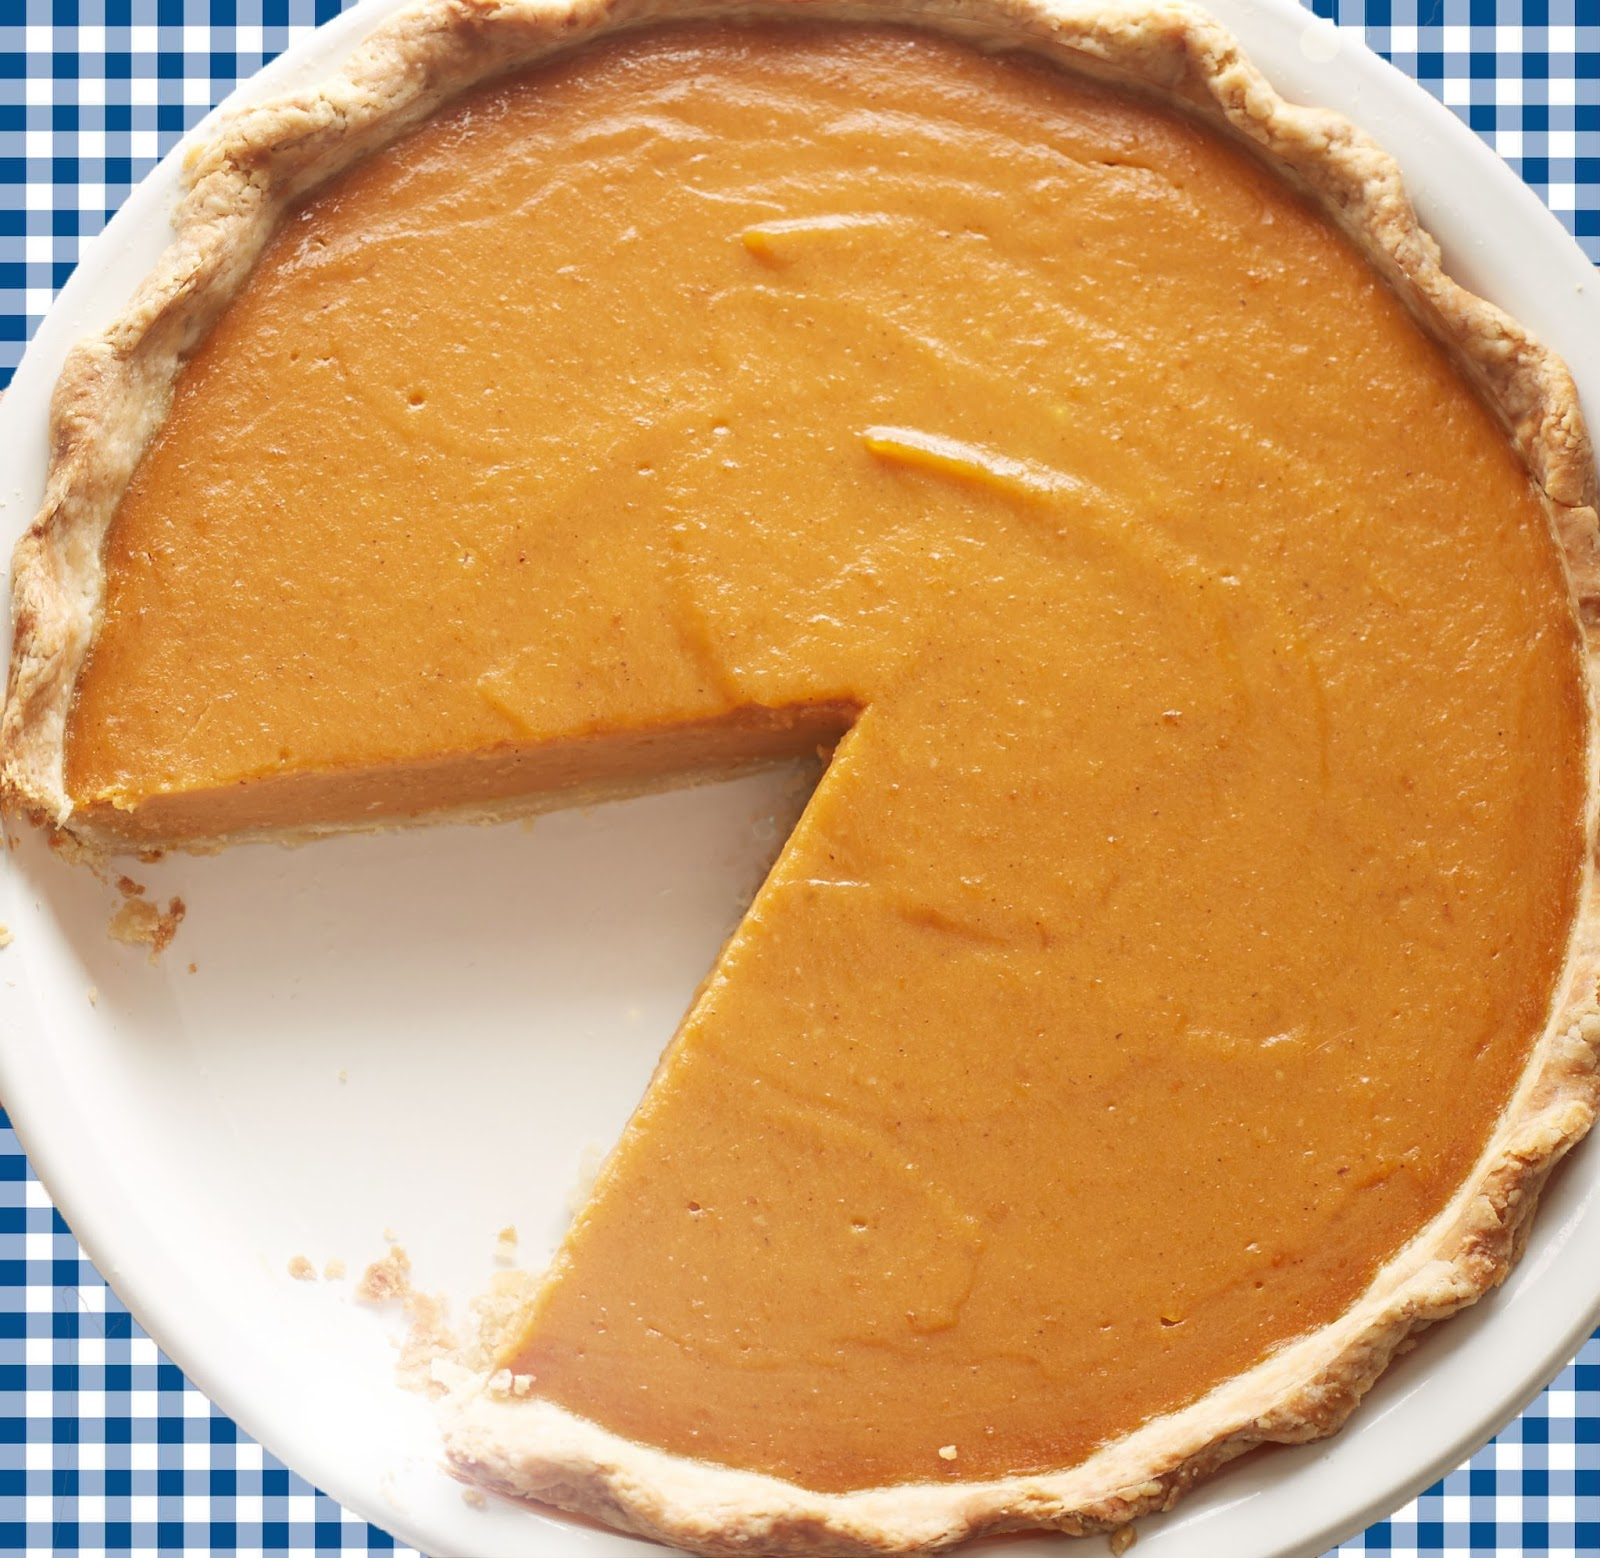 Culinary physics patti labelles easy pumpkin pie recipe southern patti labelles easy pumpkin pie recipe southern soul food forumfinder Choice Image